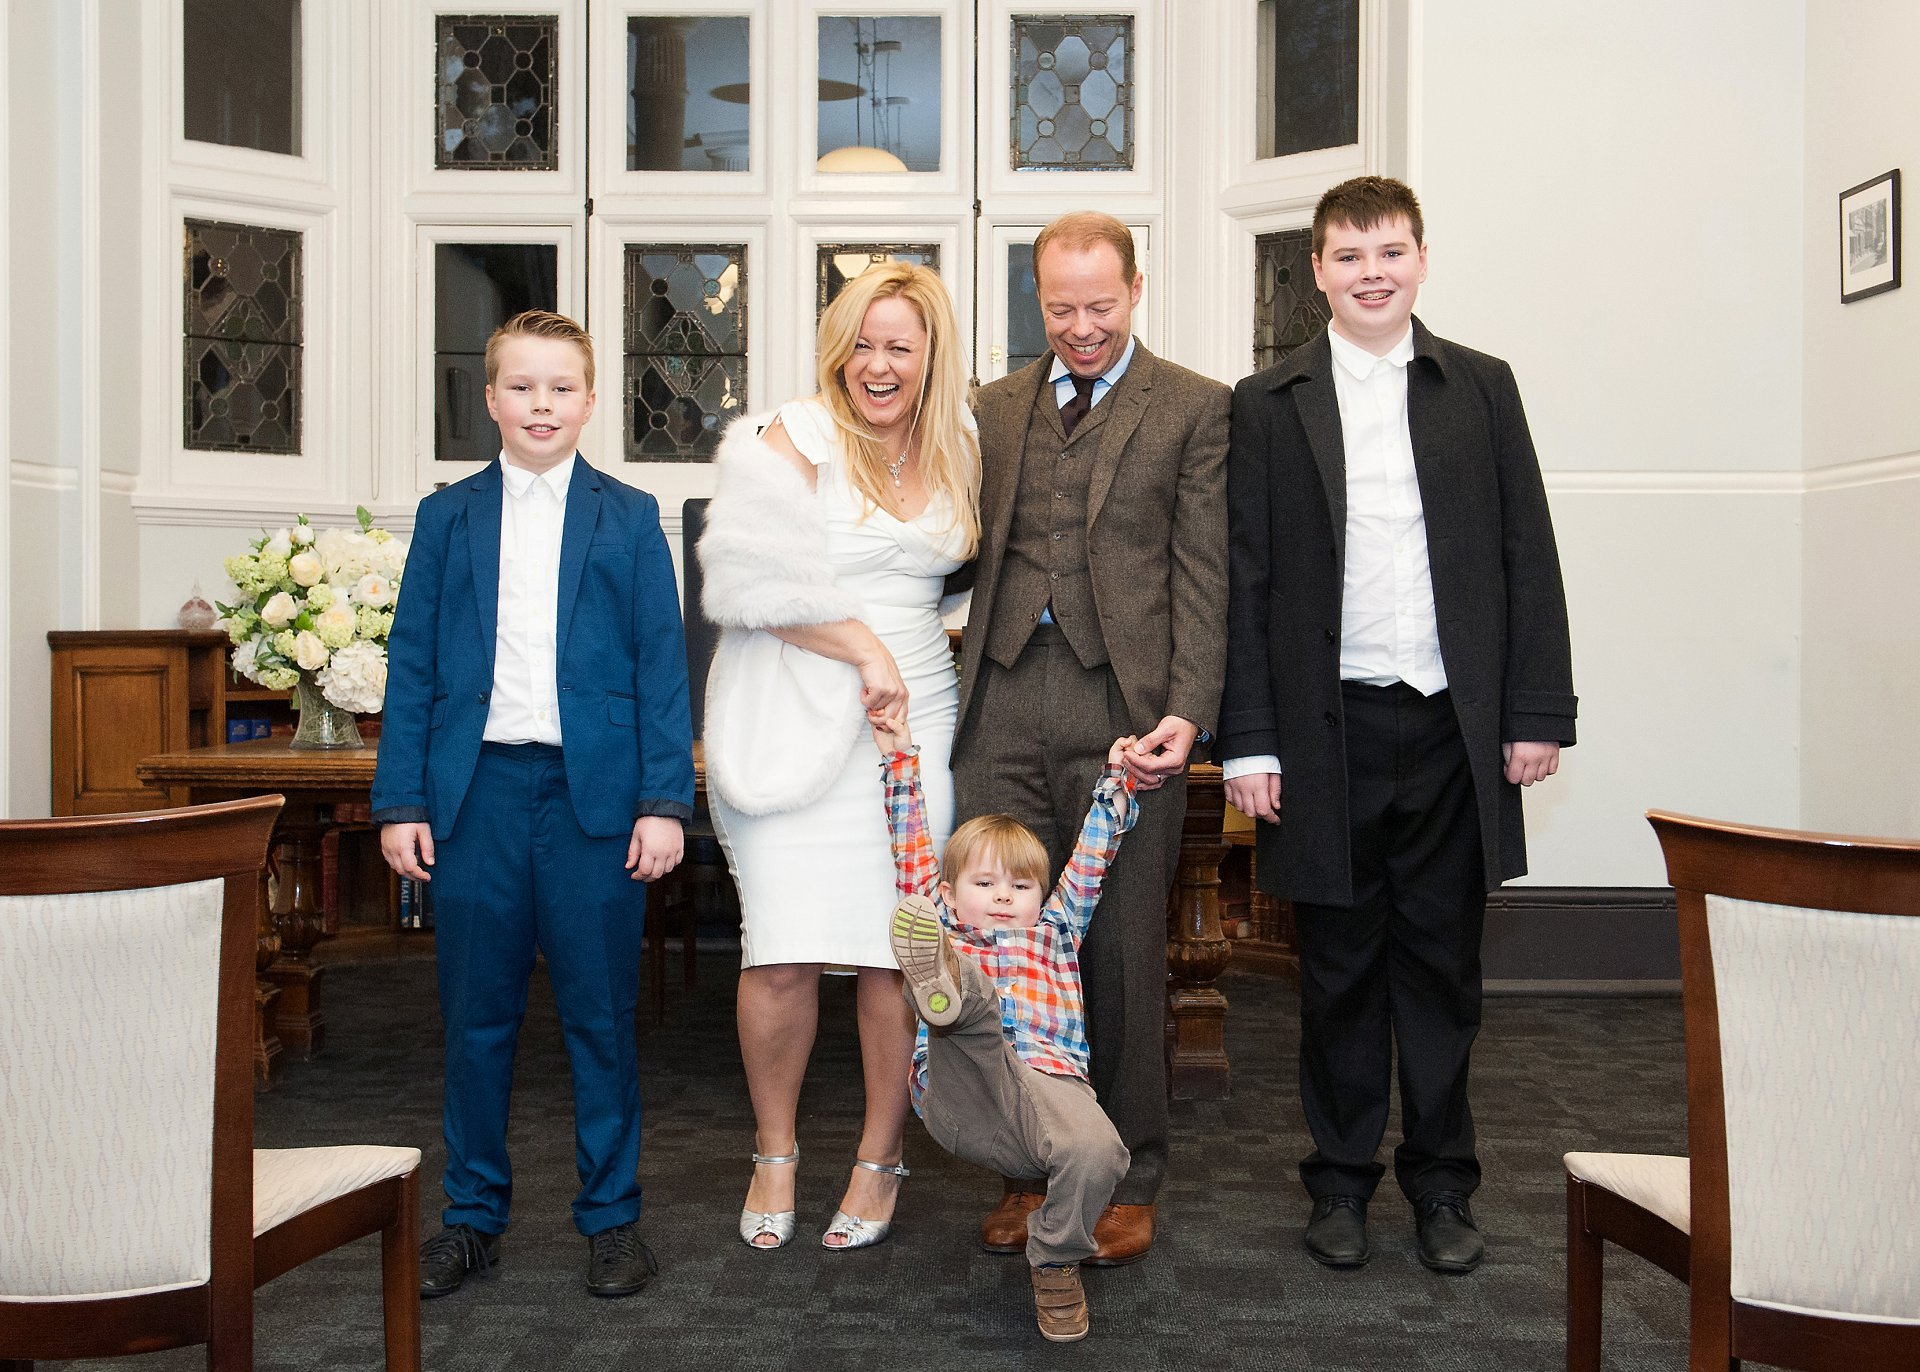 A family photograph after their civil marriage ceremony at Mayfair Library